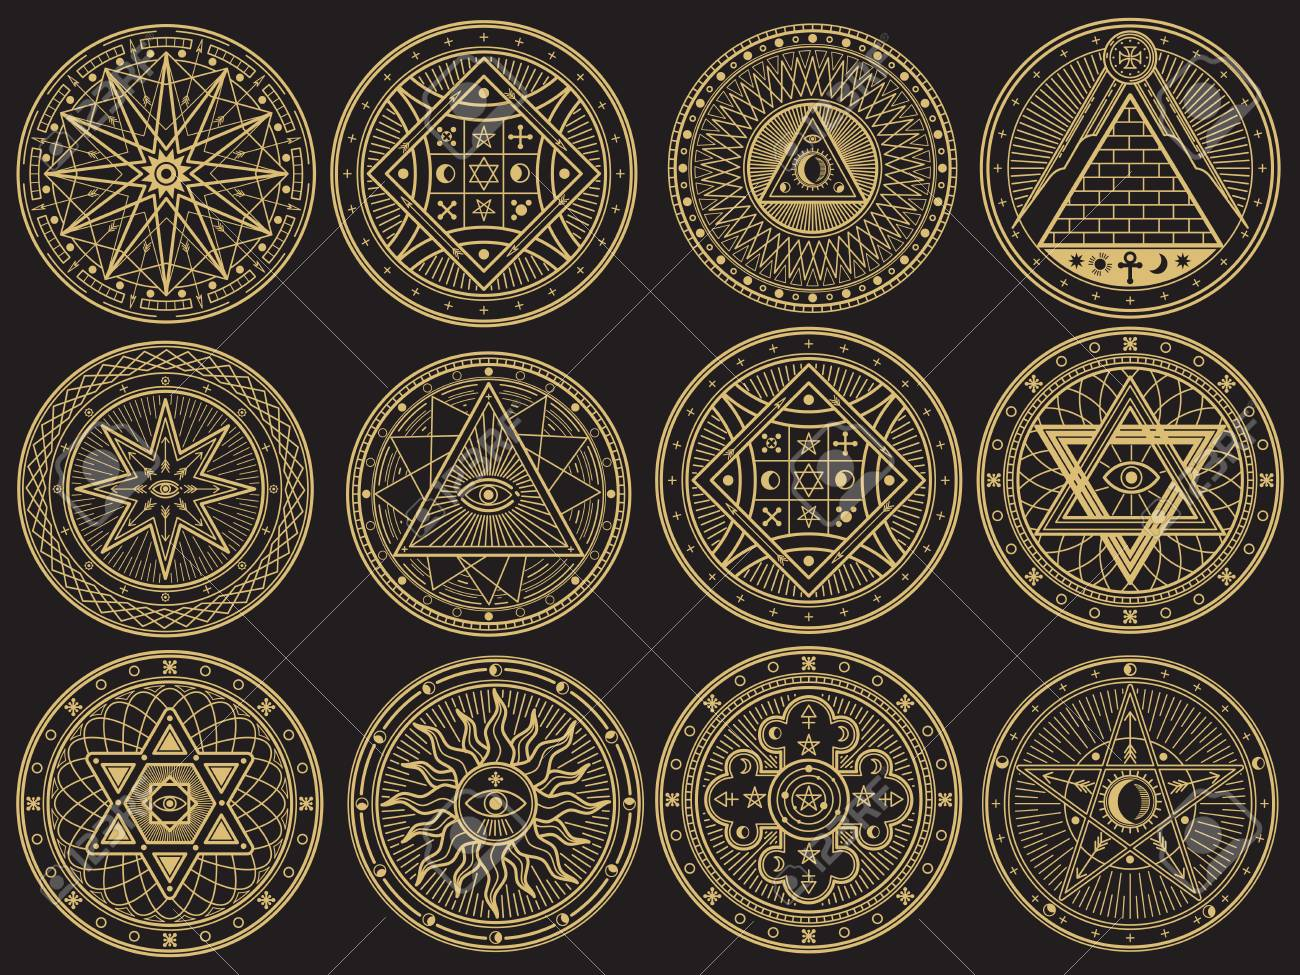 Golden Mystery, Witchcraft, Occult, Alchemy, Mystical Esoteric.. Royalty Free Cliparts, Vectors, And Stock Illustration. Image 94907048.